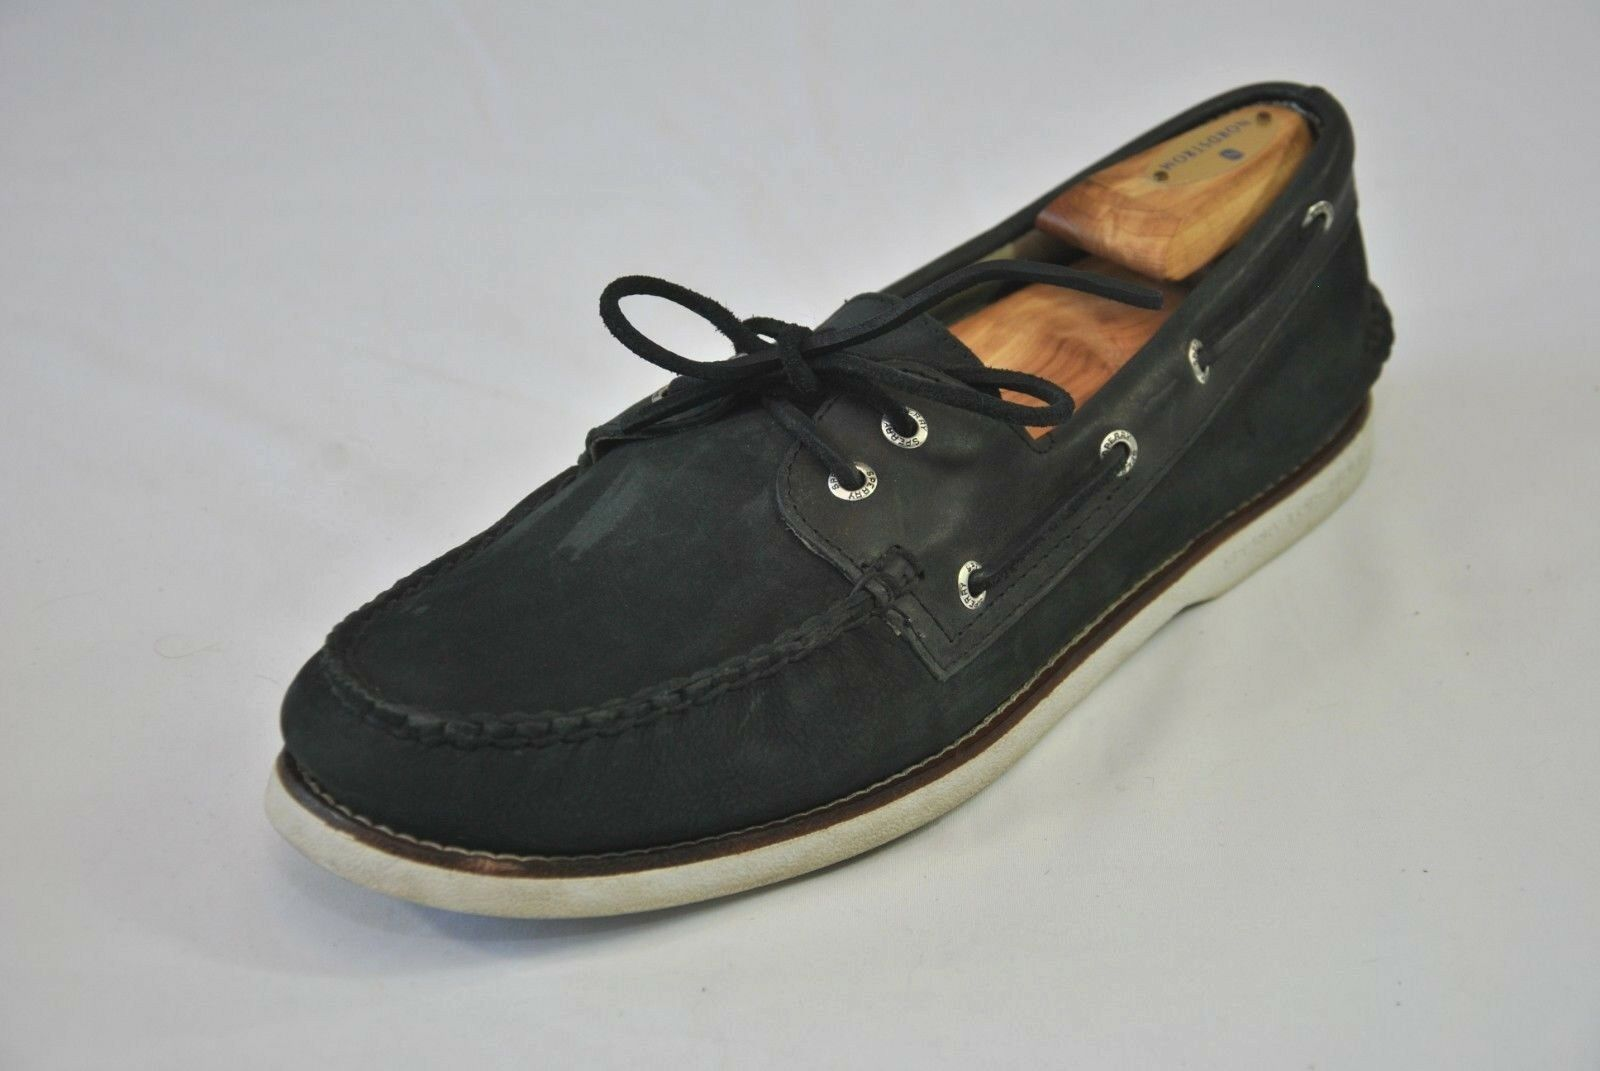 Sperry Top Sider gold Cup Black Suede shoes Men's Size 12 Boat Deck